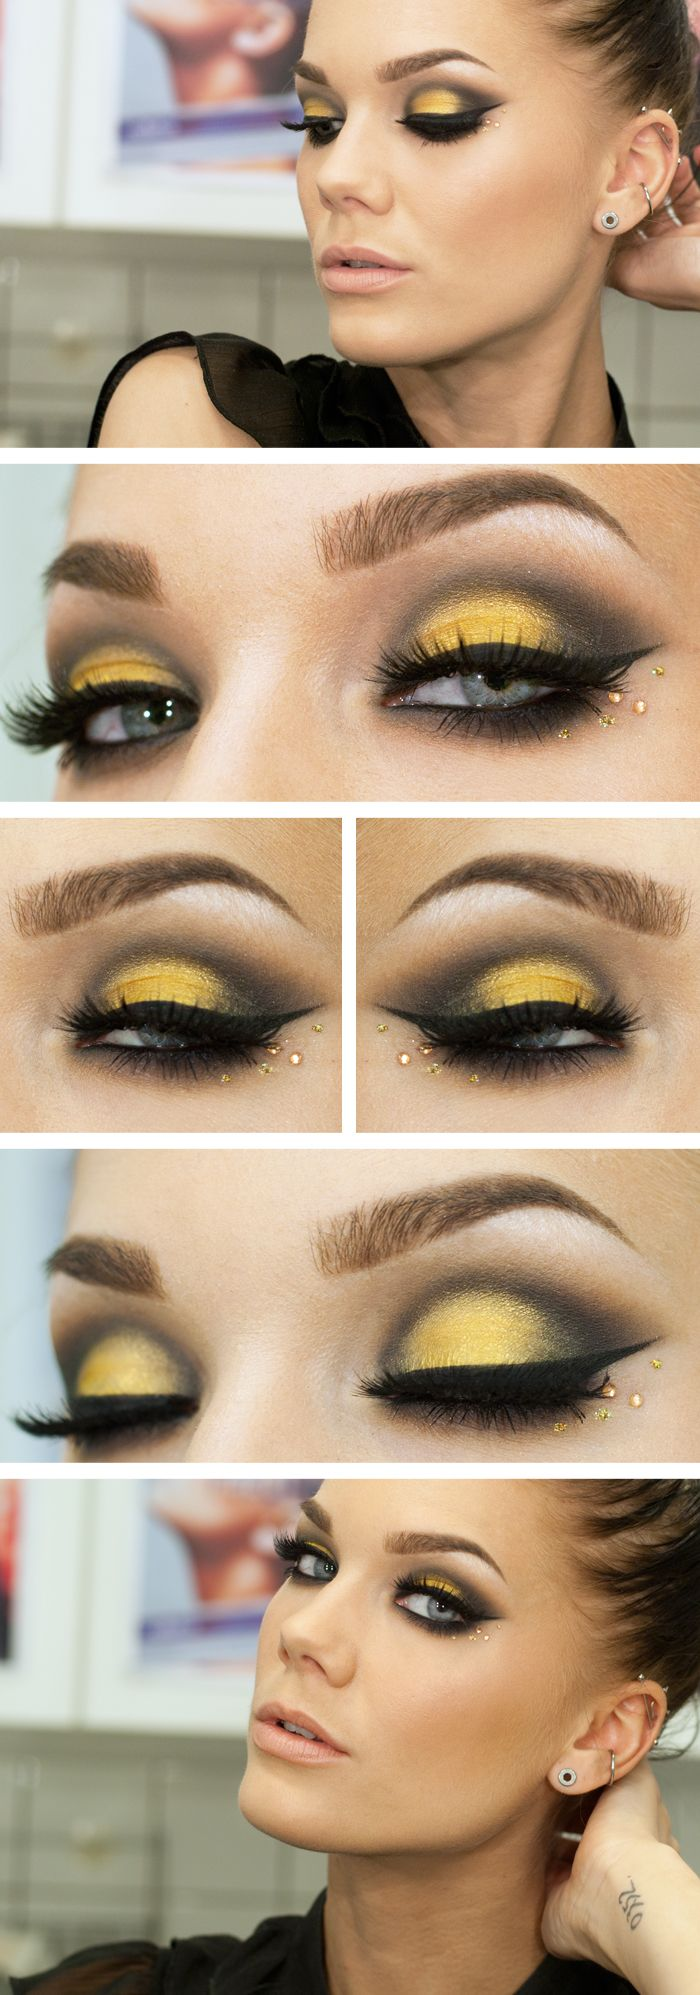 11 Everyday Makeup Tutorials And Ideas For Women Pretty